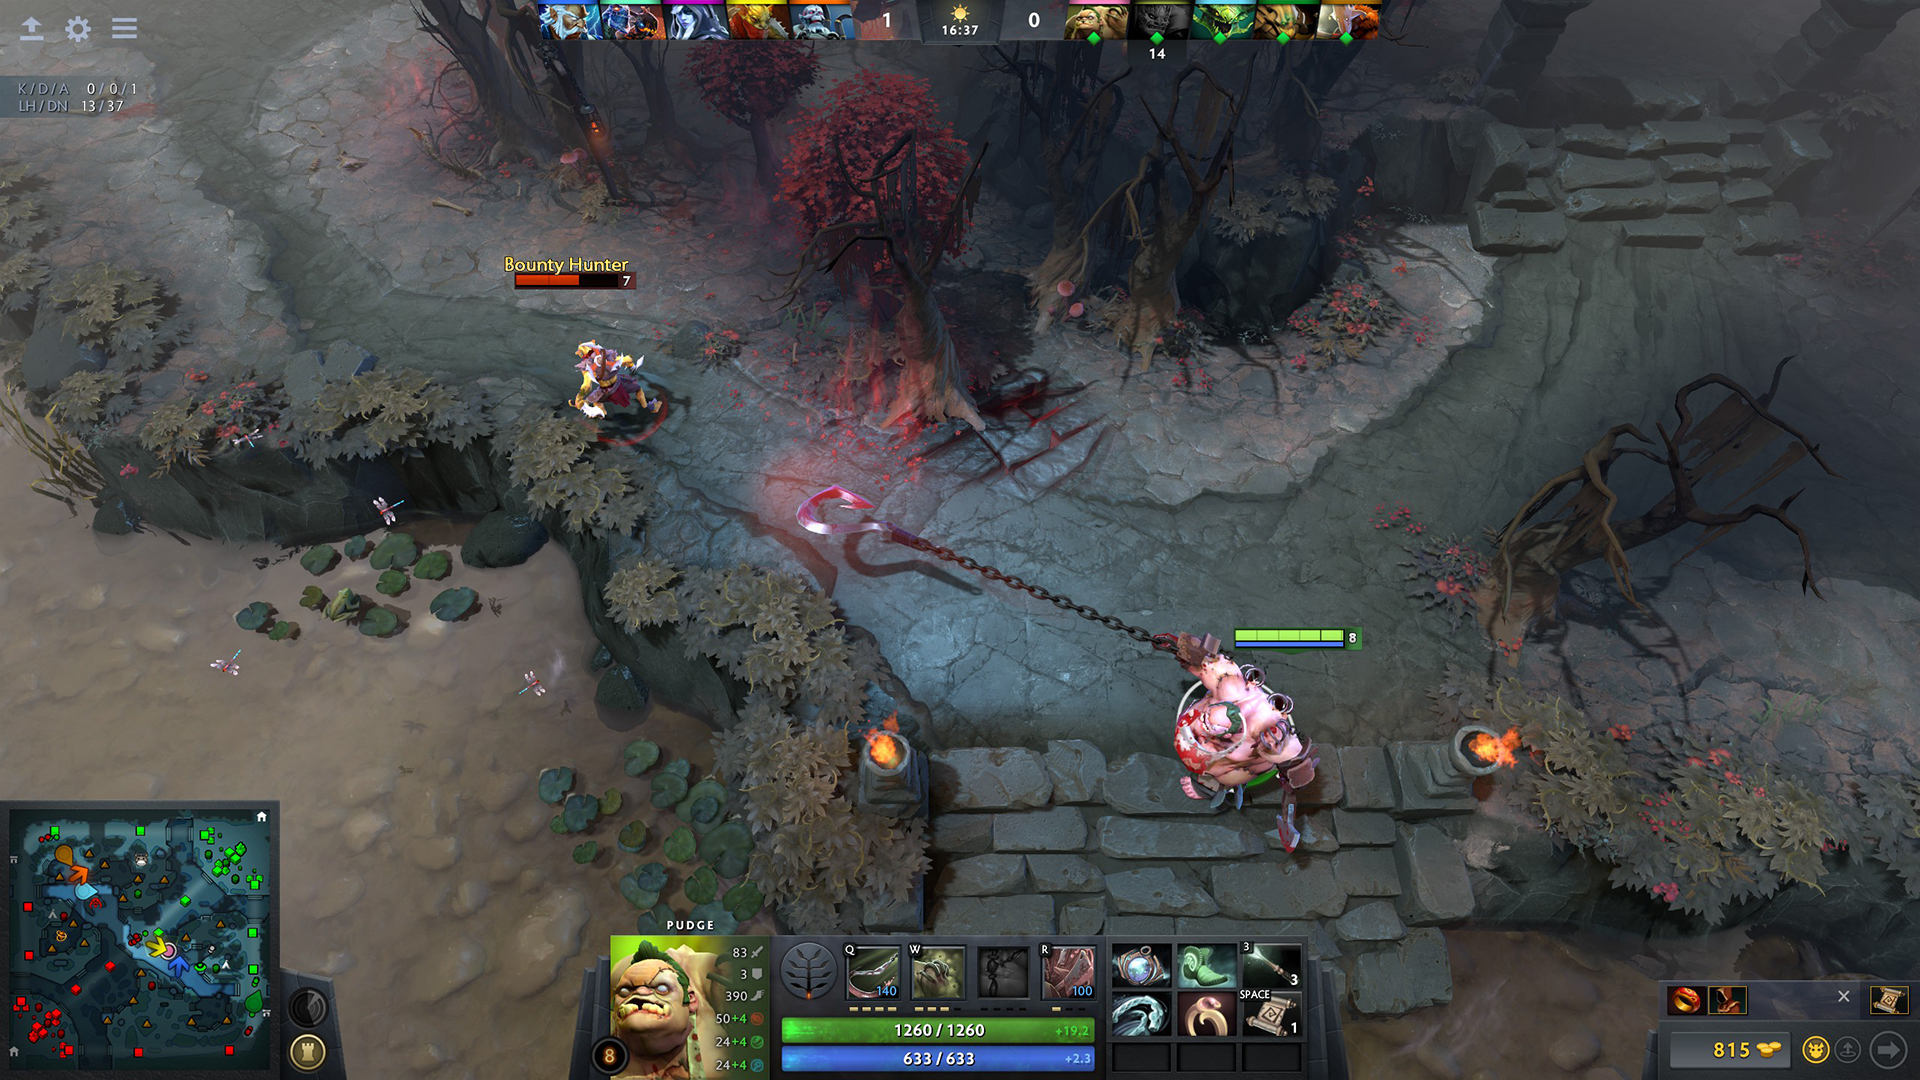 Dota 2 Gameplay Screenshot 4